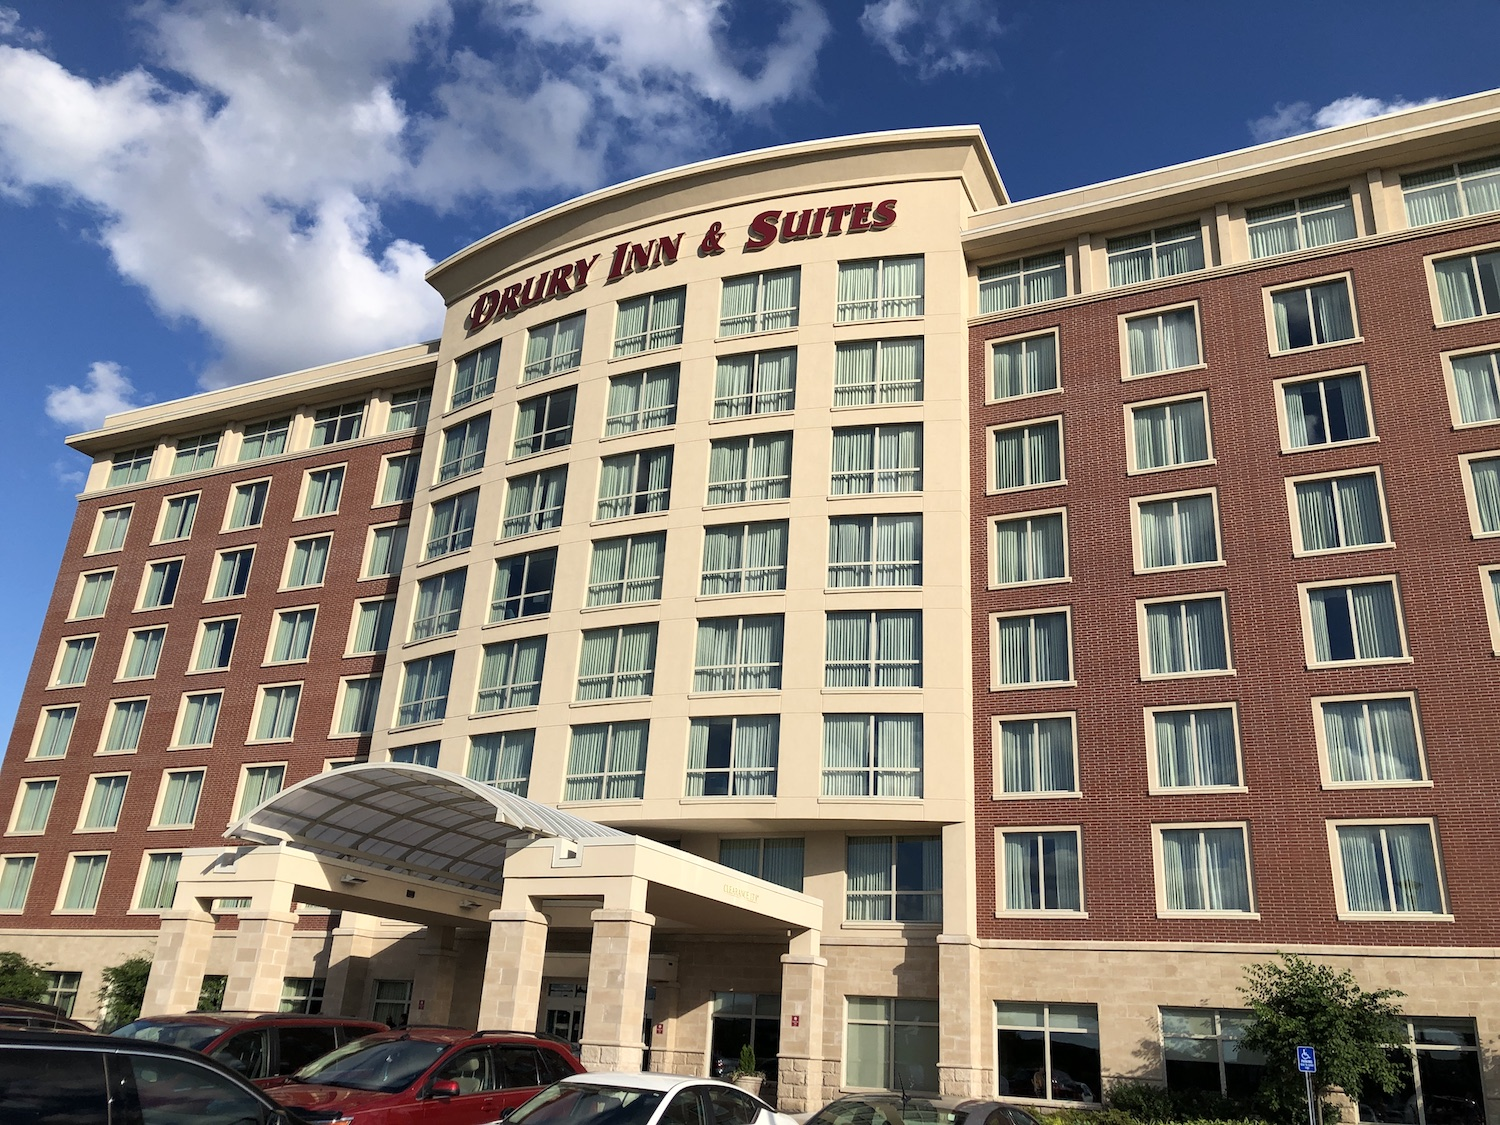 20 Hotel Reviews By Real People State By State Travel